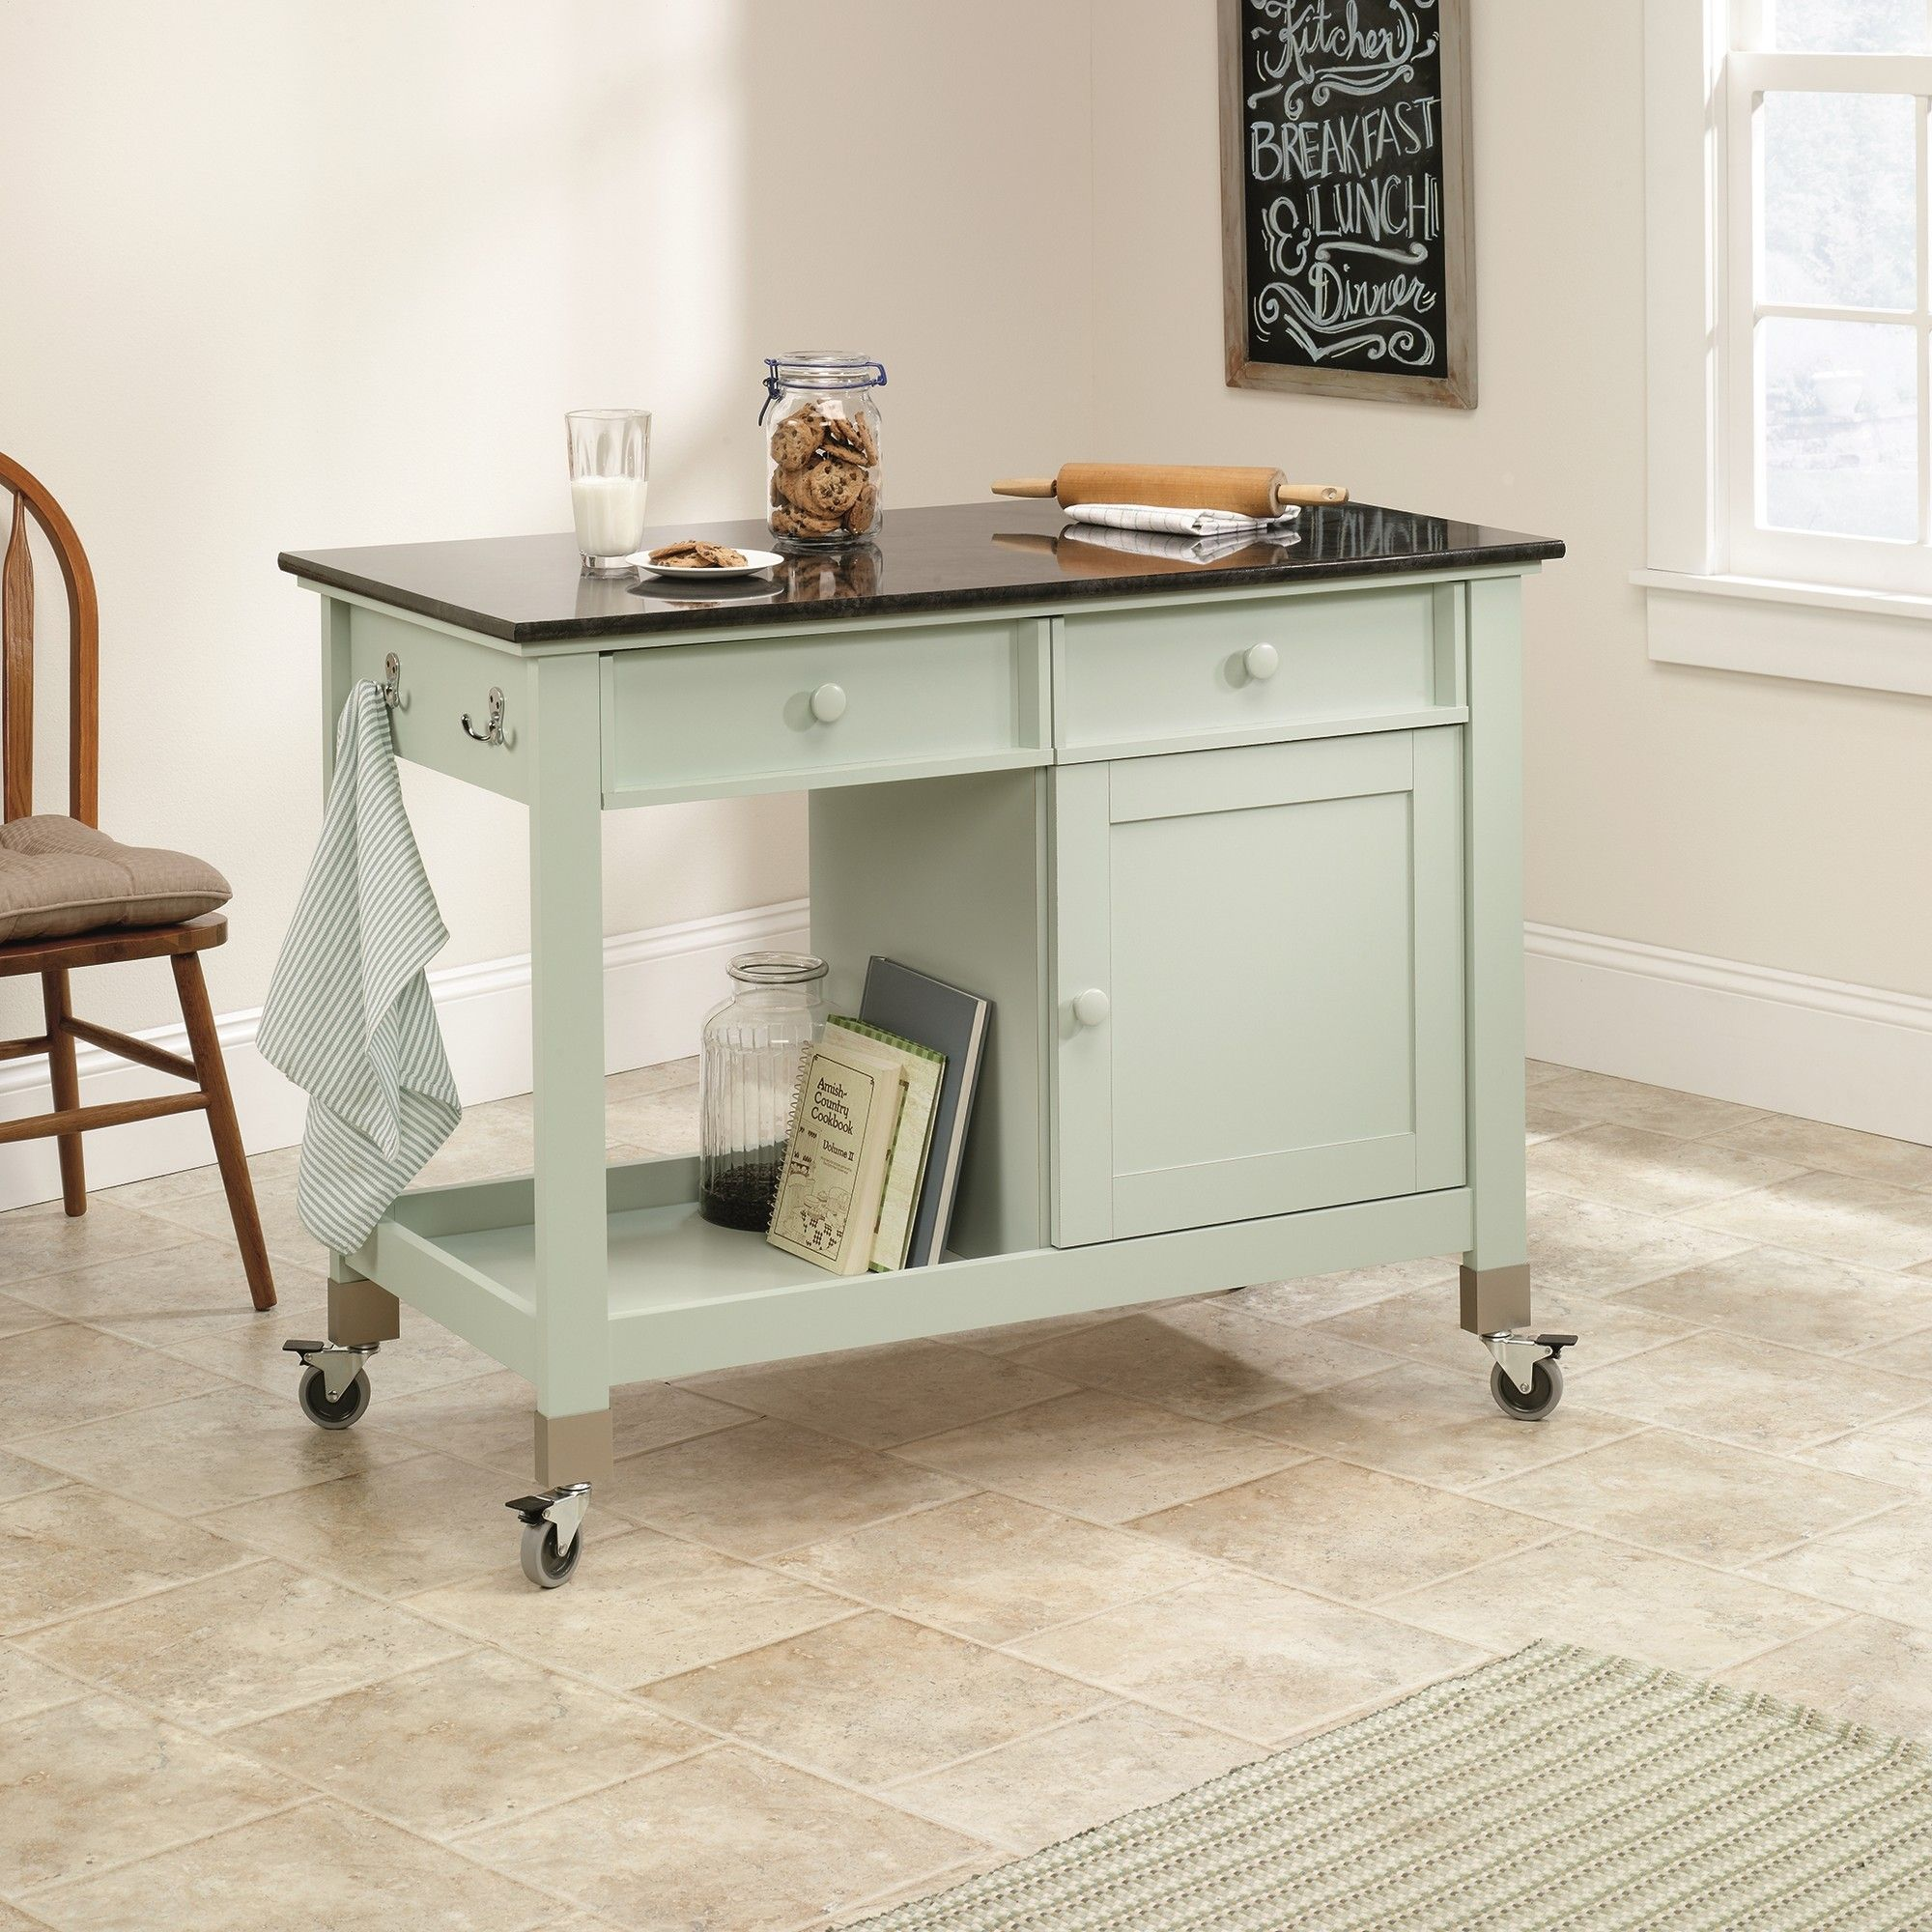 Sauder original cottage mobile kitchen island reviews wayfair